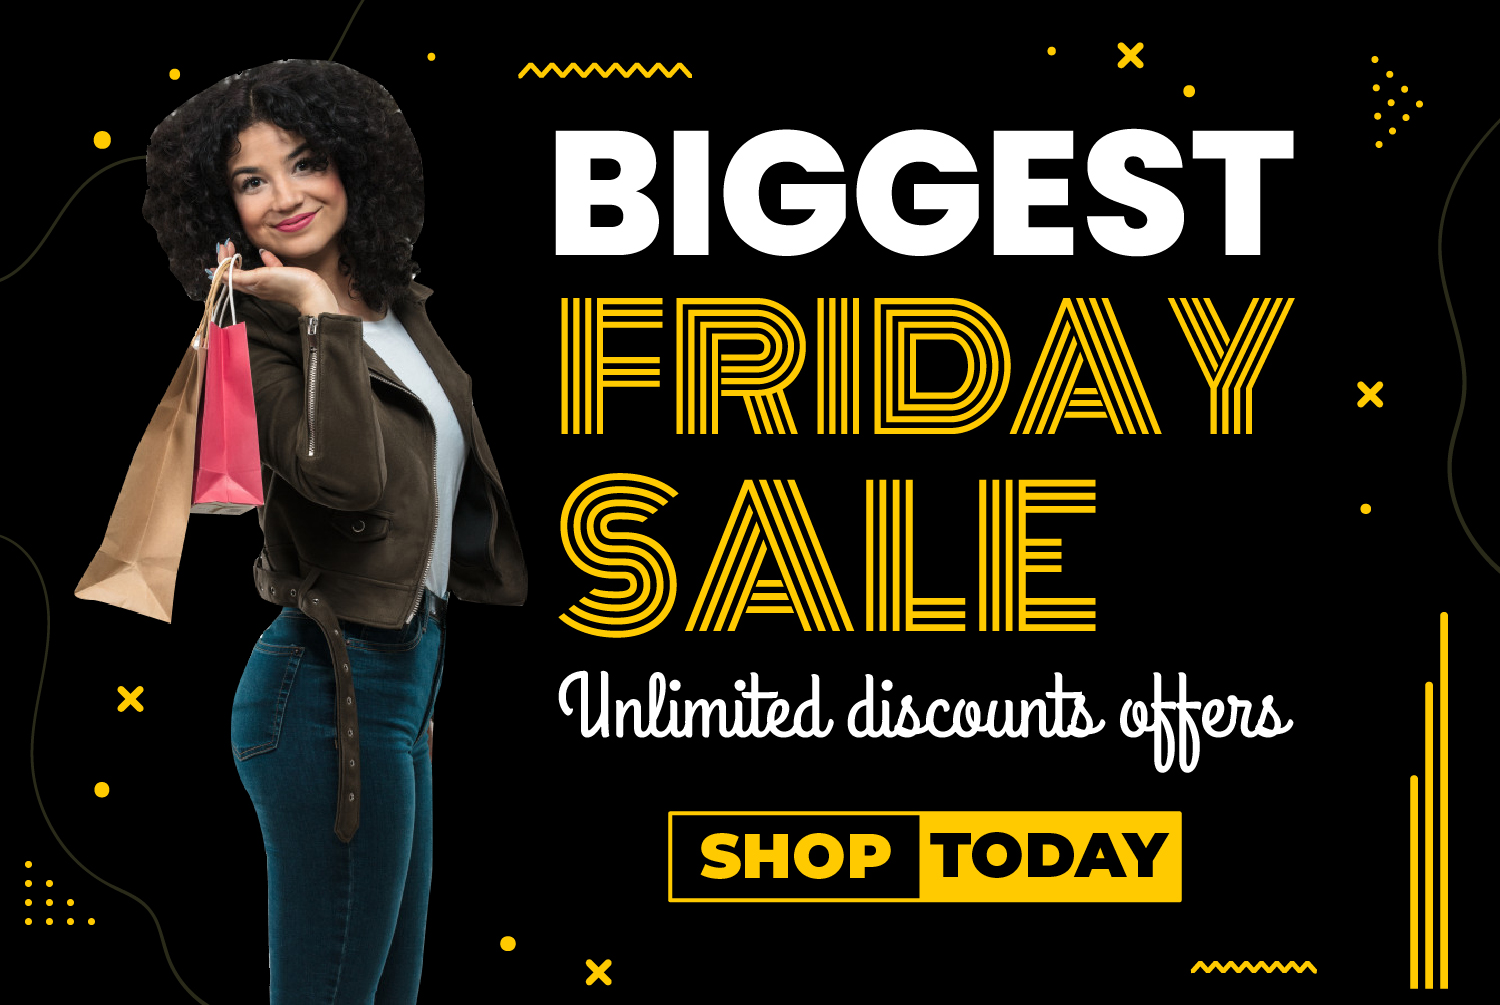 Biggest-Friday-Sale-02.jpg